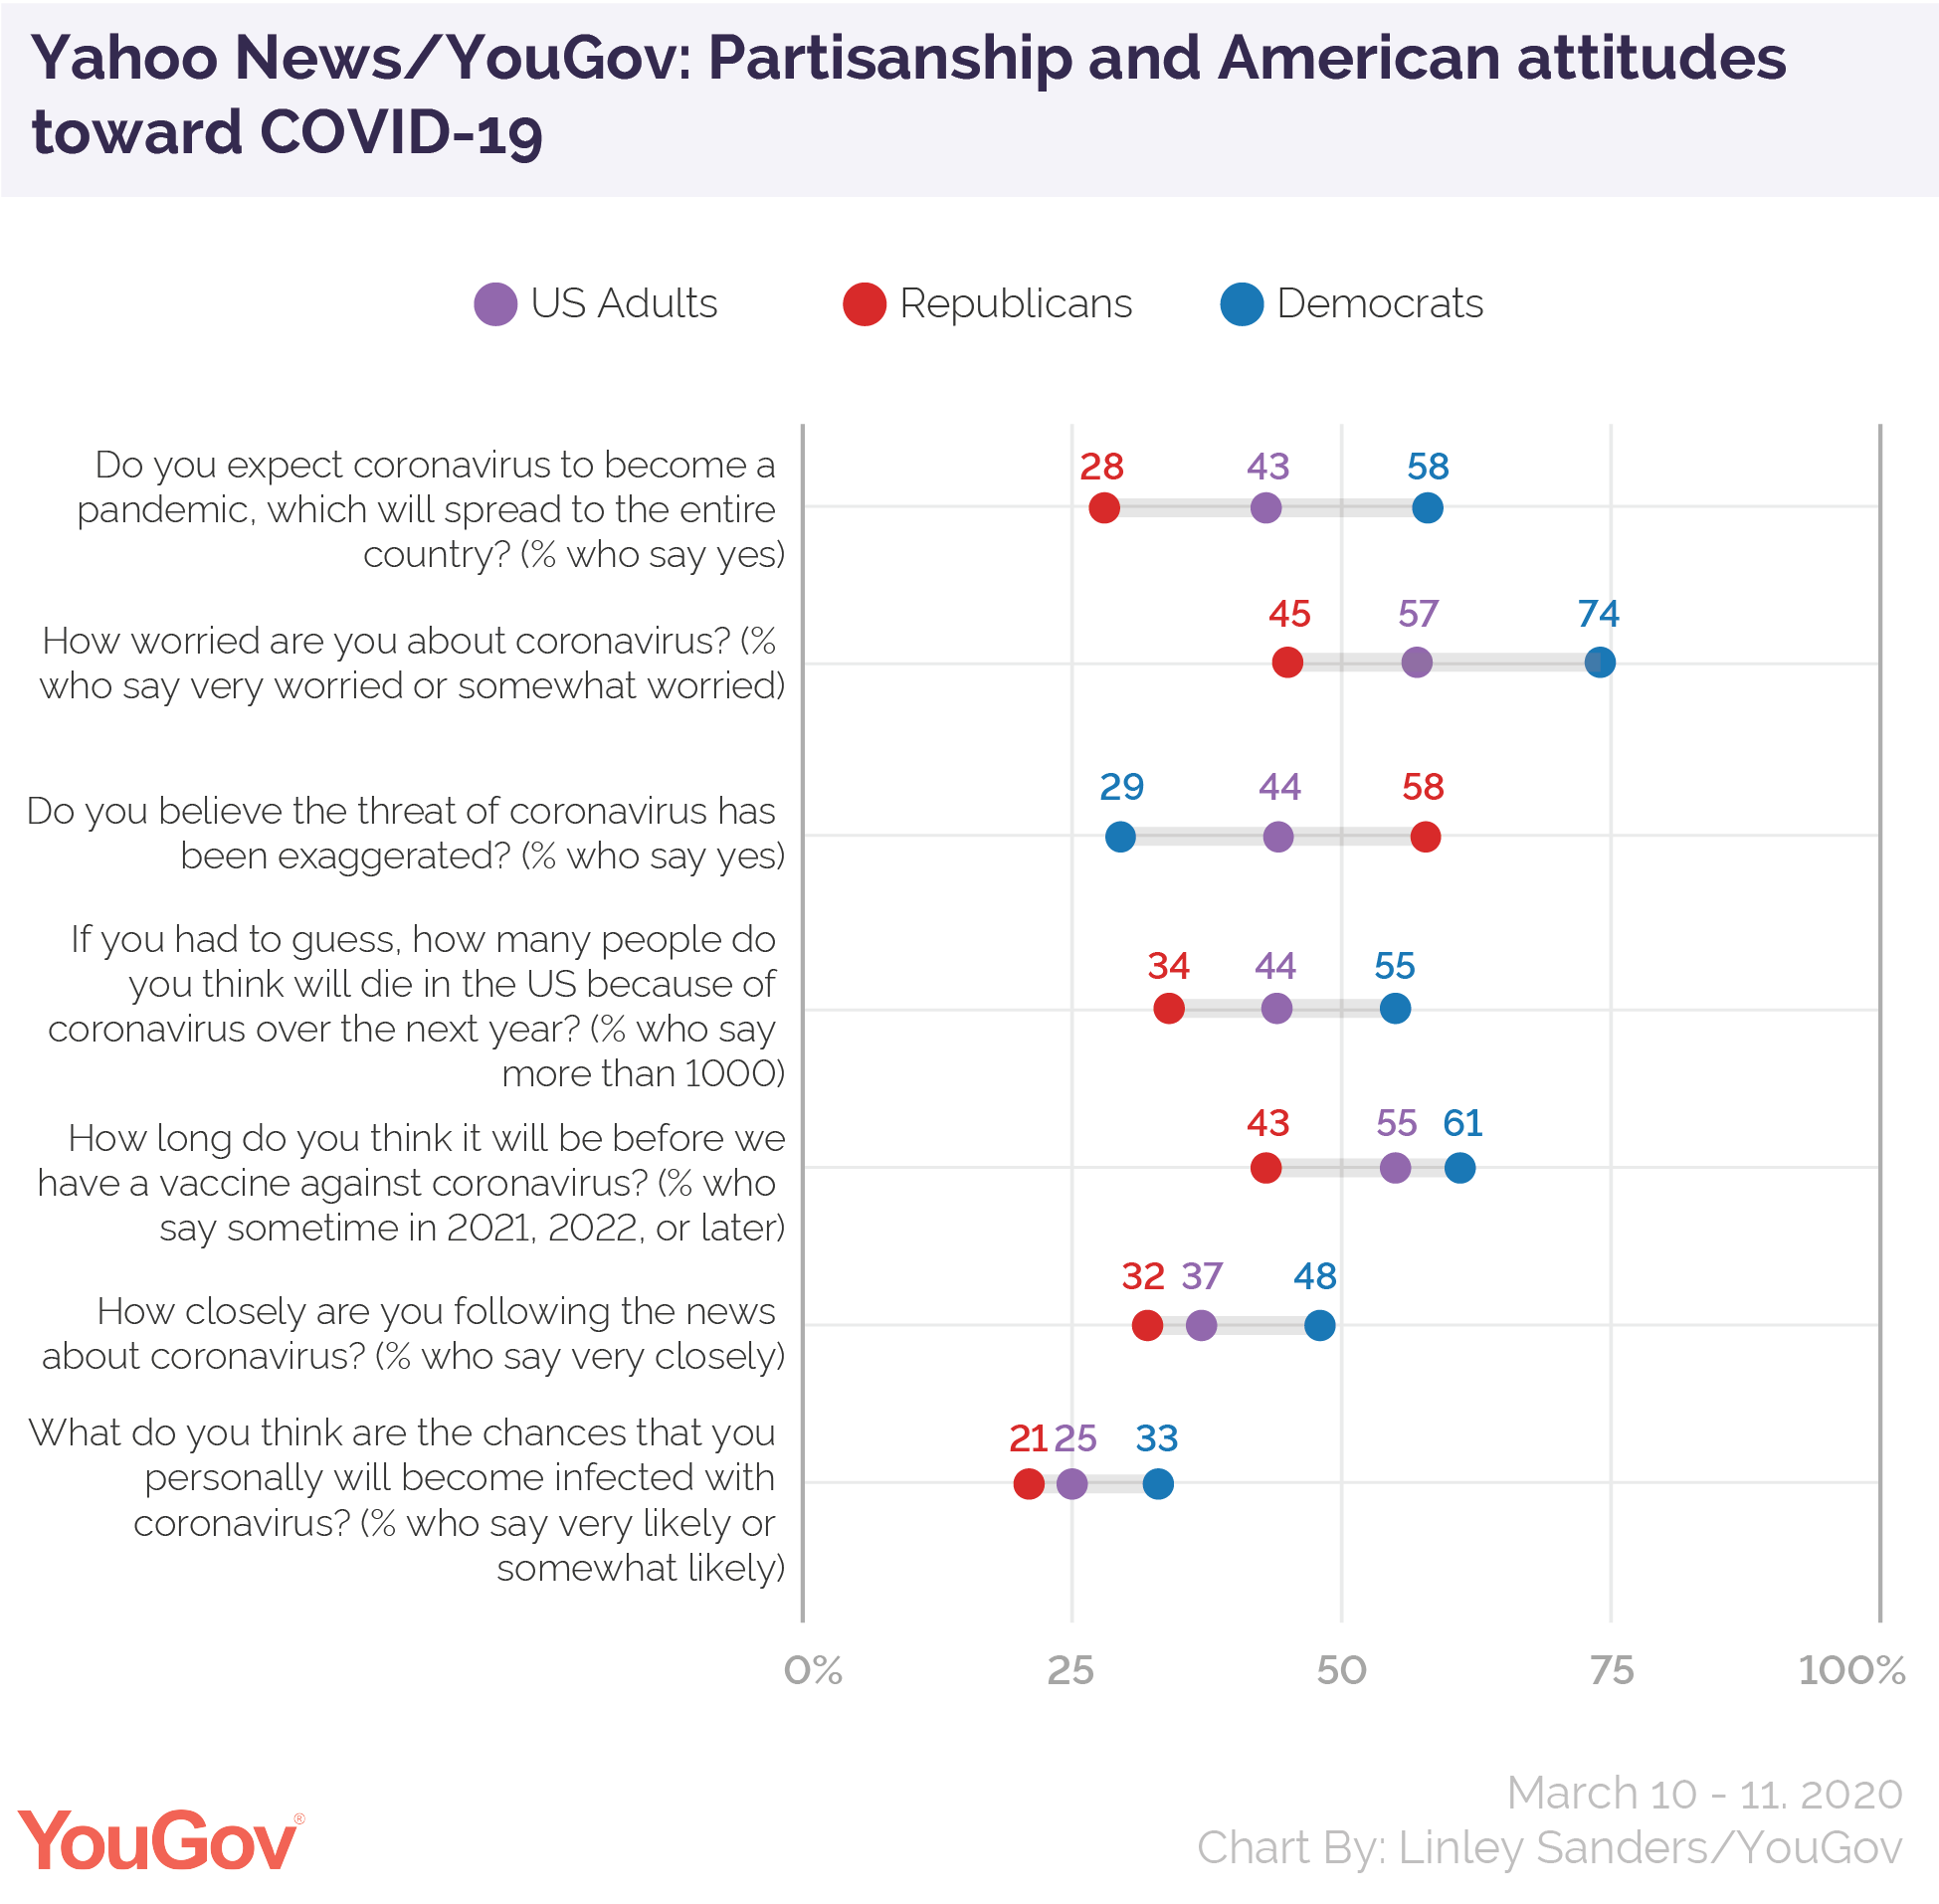 Yahoo News/YouGov: Partisanship and American attitudes toward COVID-19